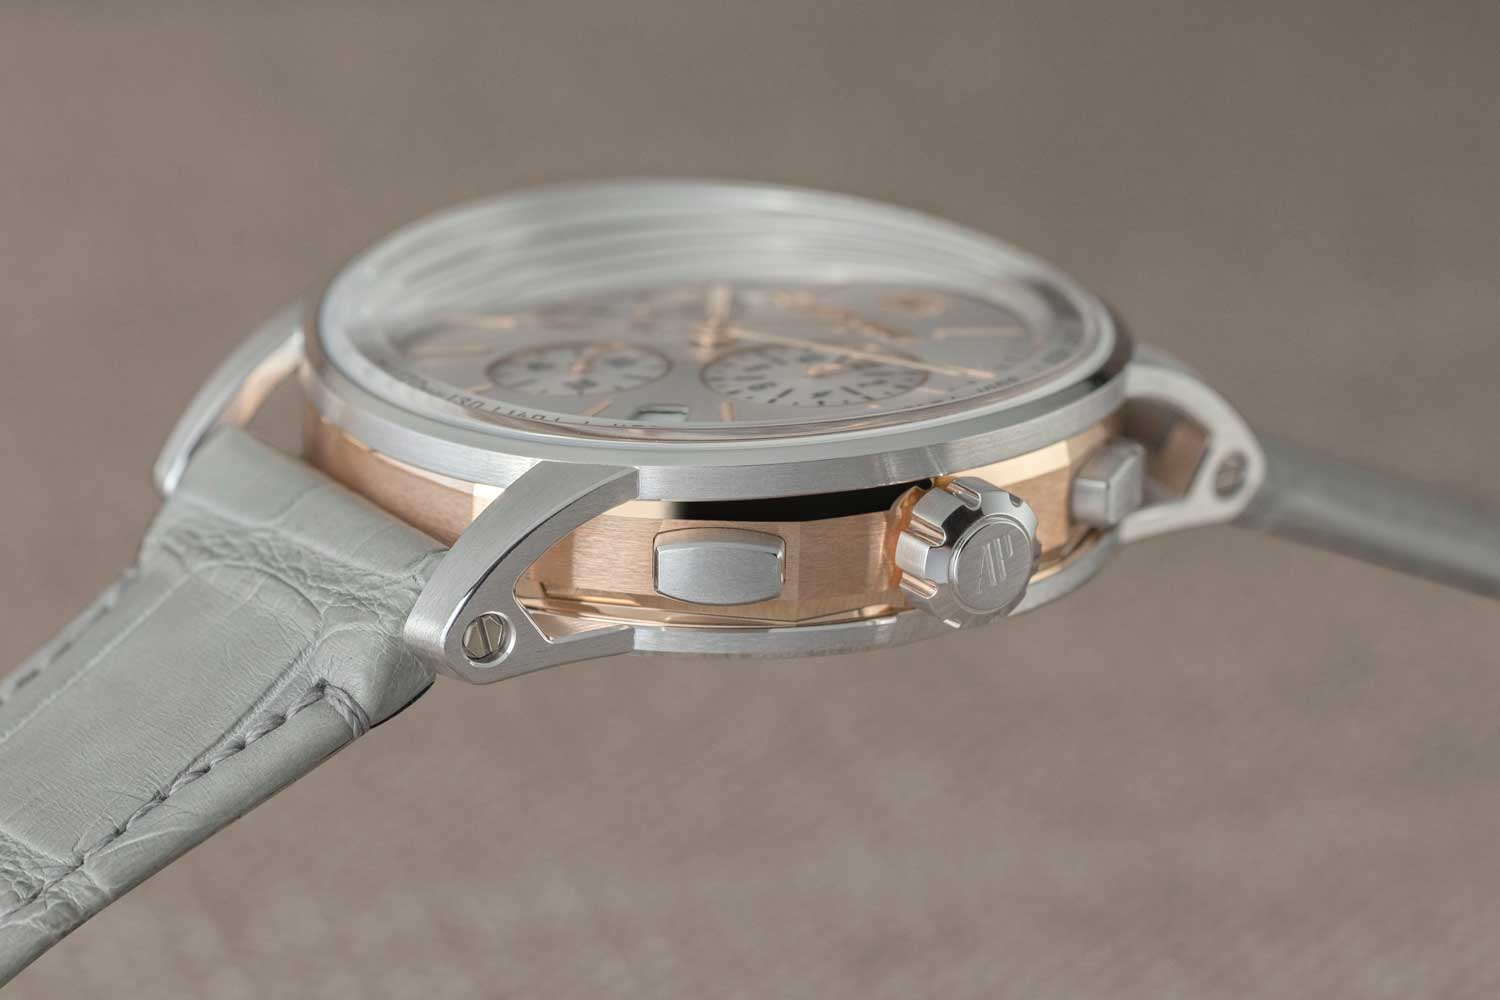 The side of the case of the Code 11.59 by Audemars Piguet Selfwinding Chronograph in 41mm, ref. 26393CR.OO.A009CR.01 (©Revolution)